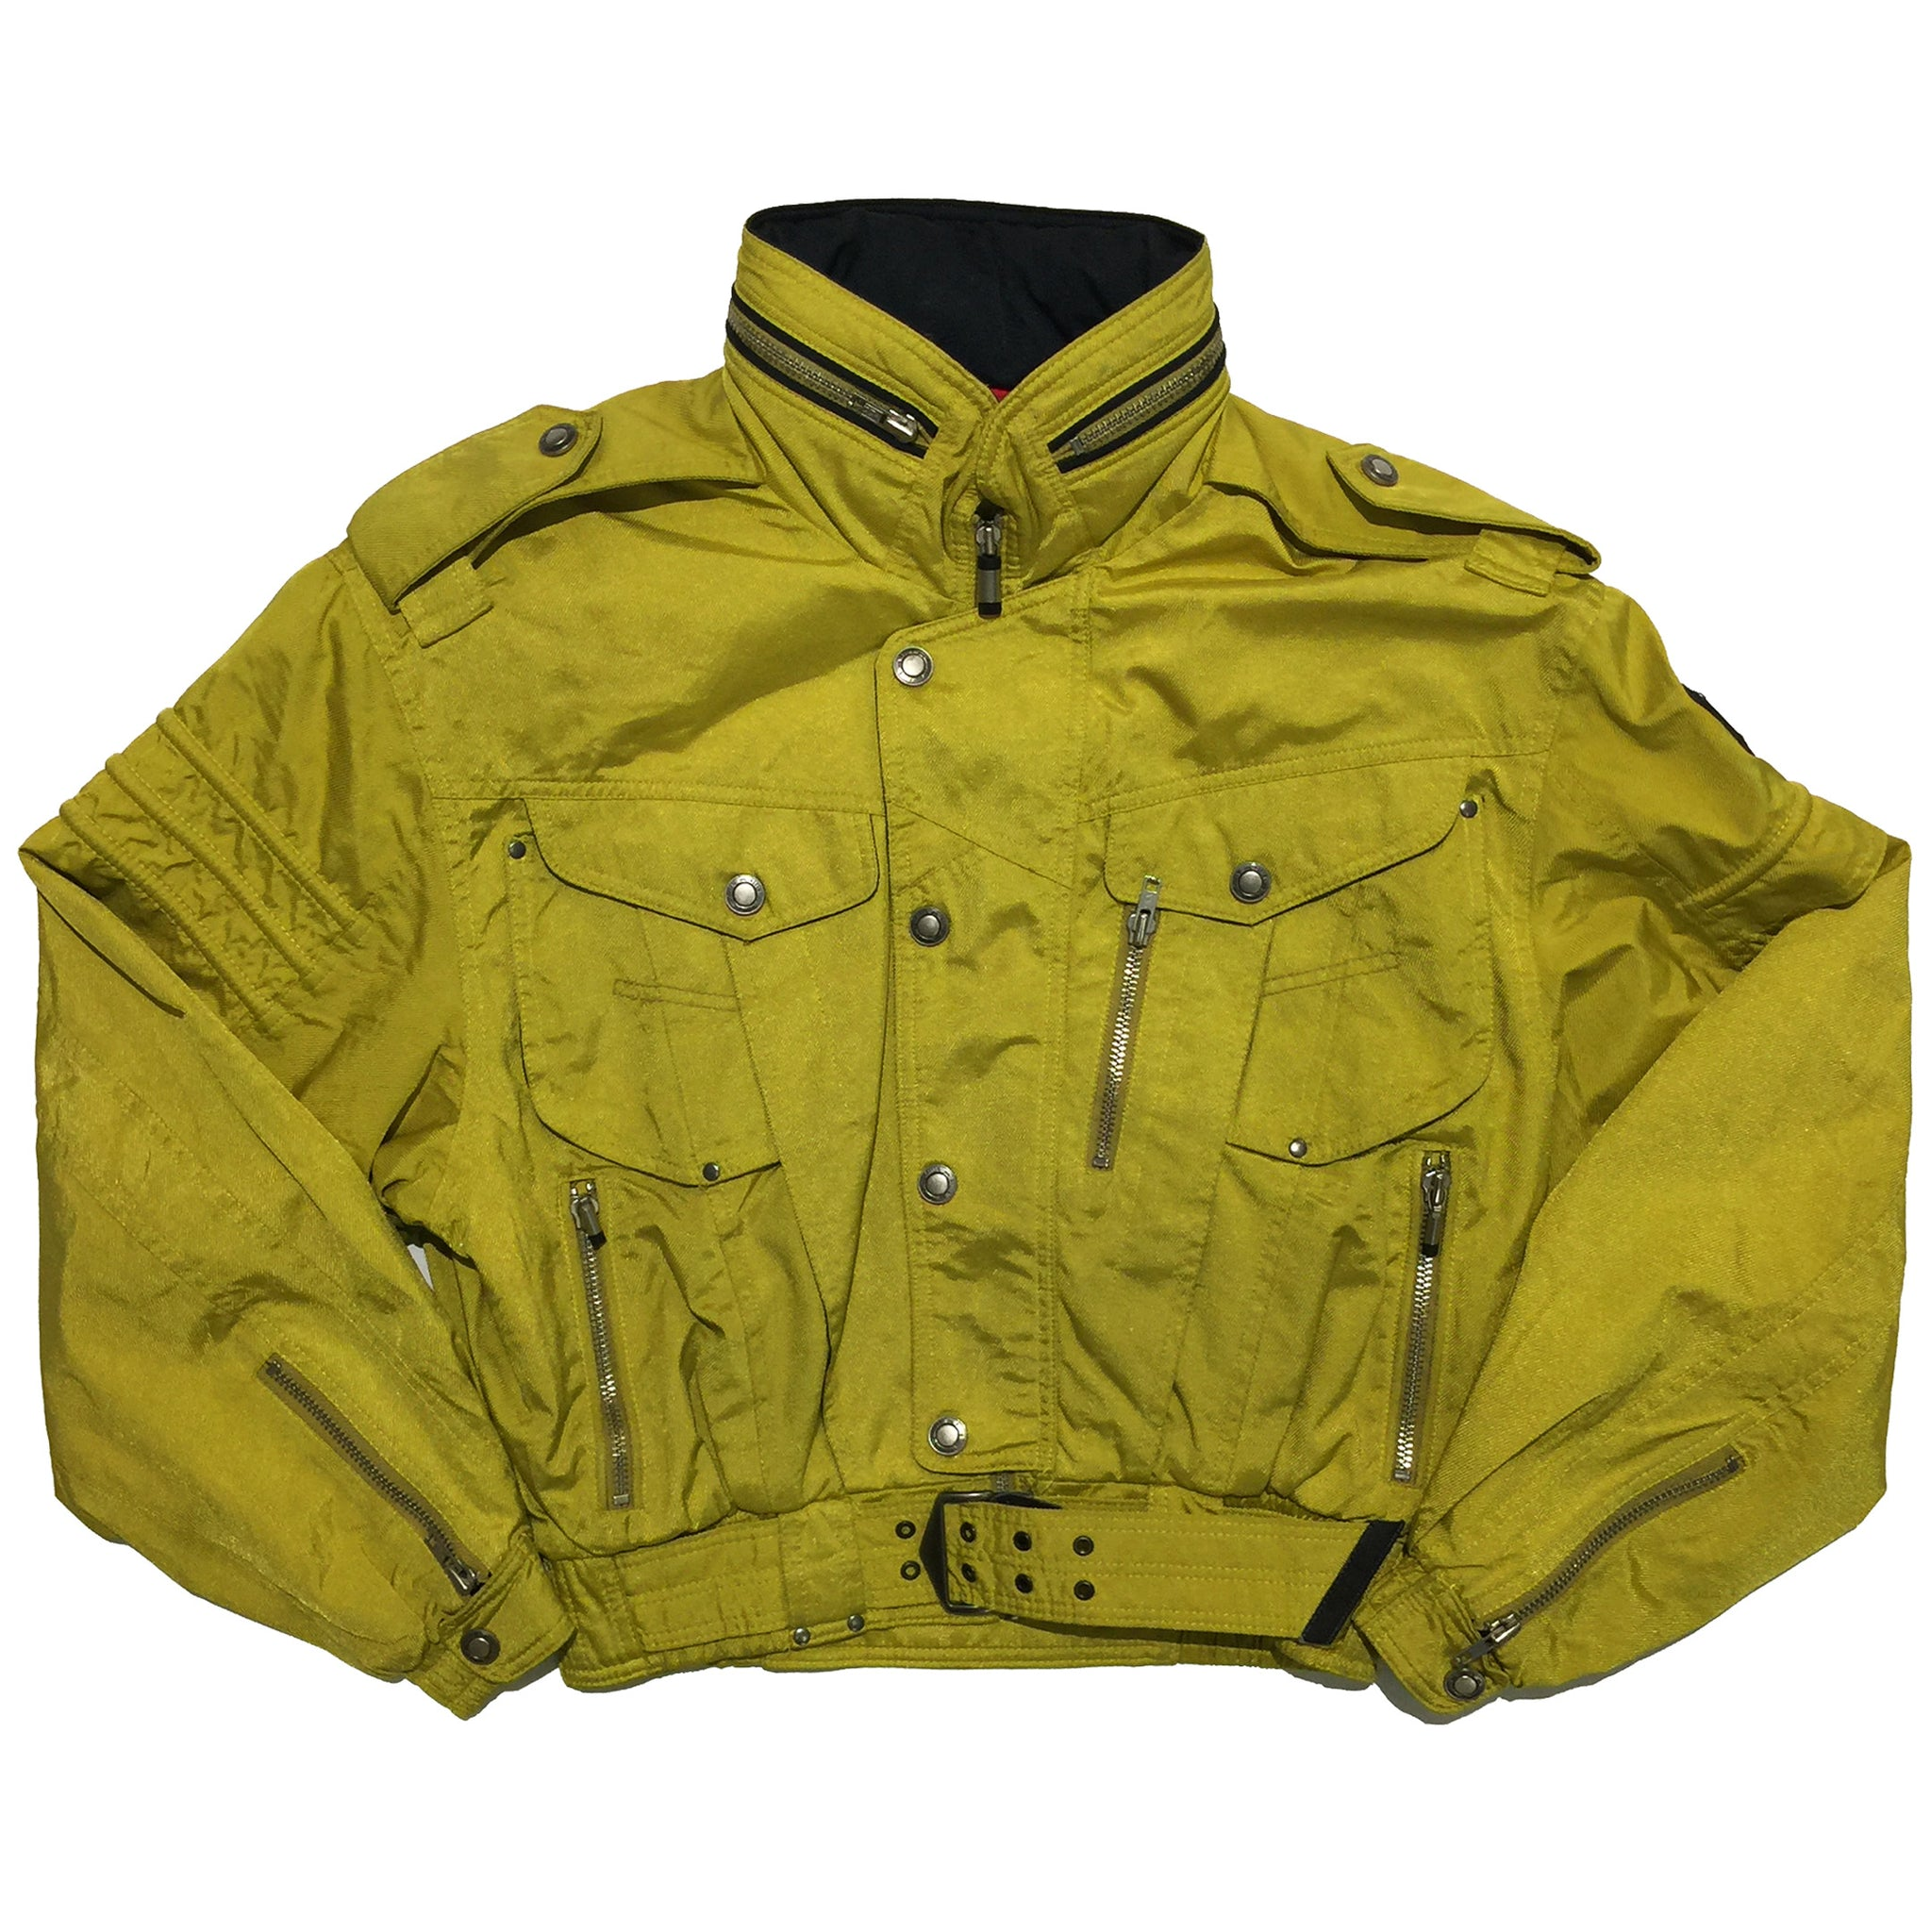 Killy Mustard Rider Style Jacket